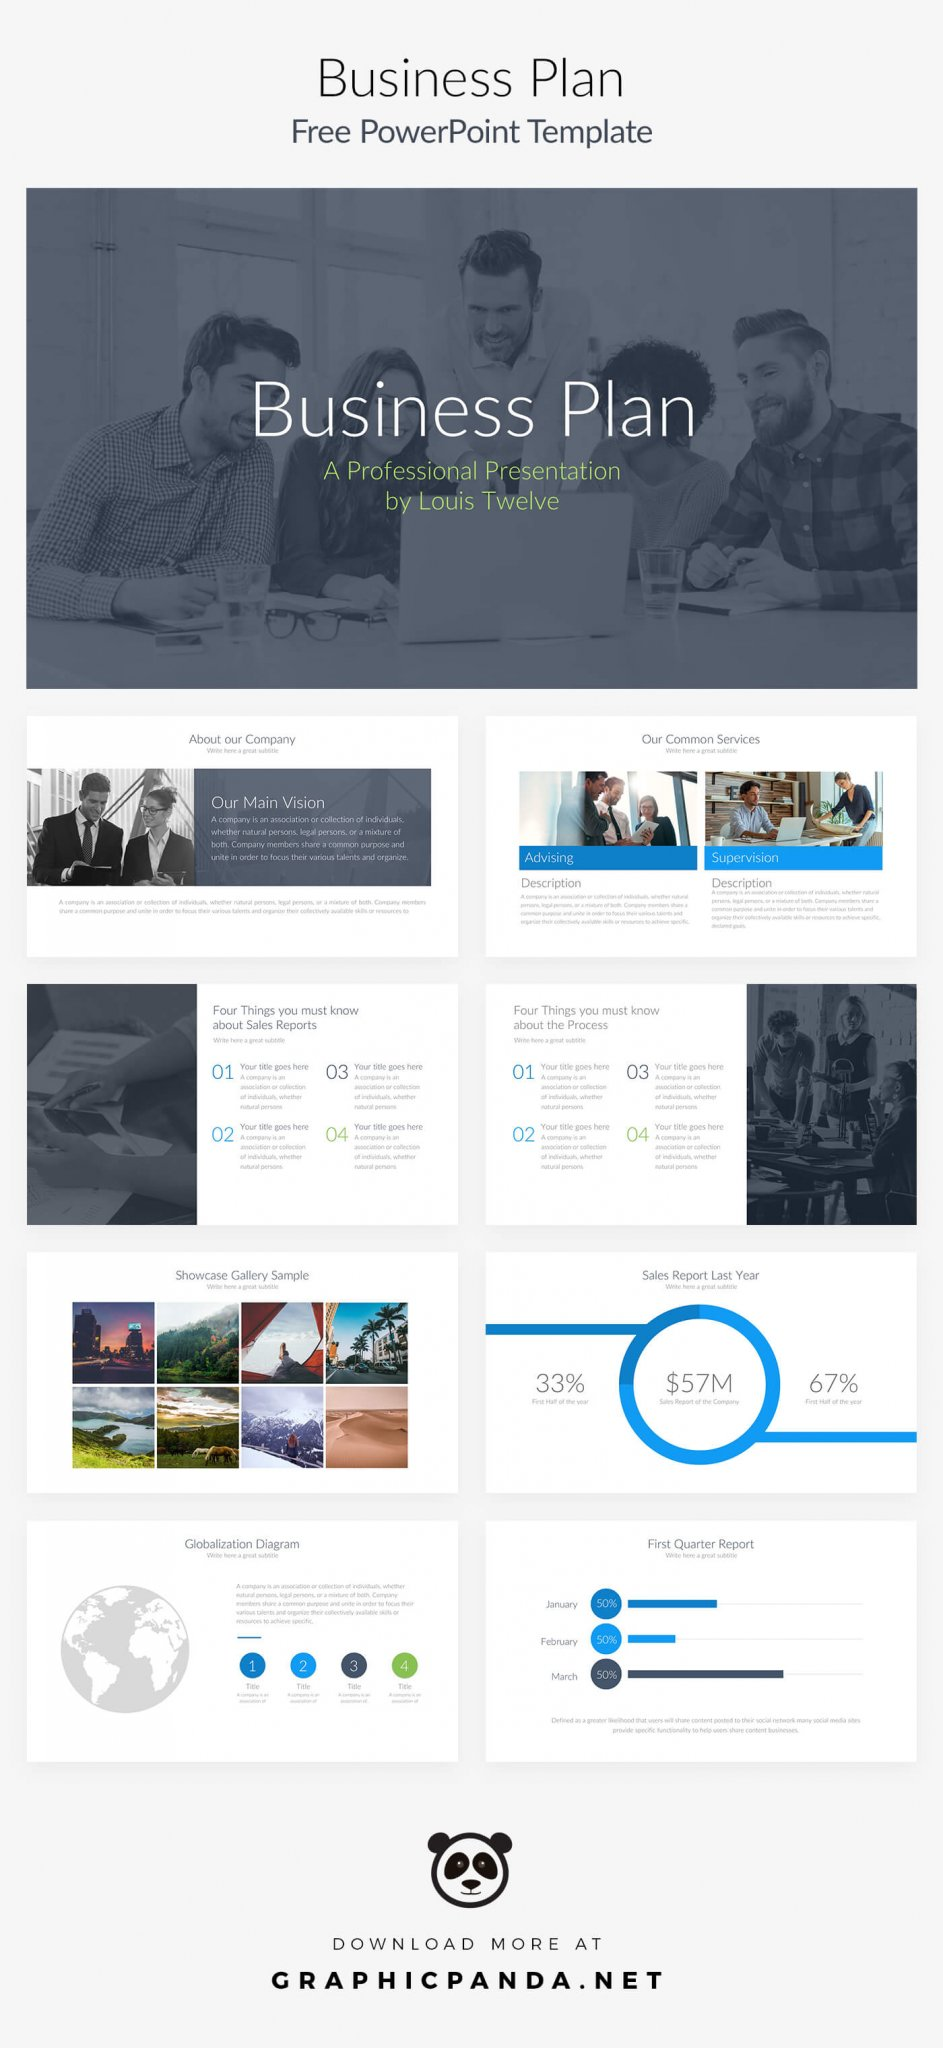 free business plan powerpoint presentation template, Presentation templates